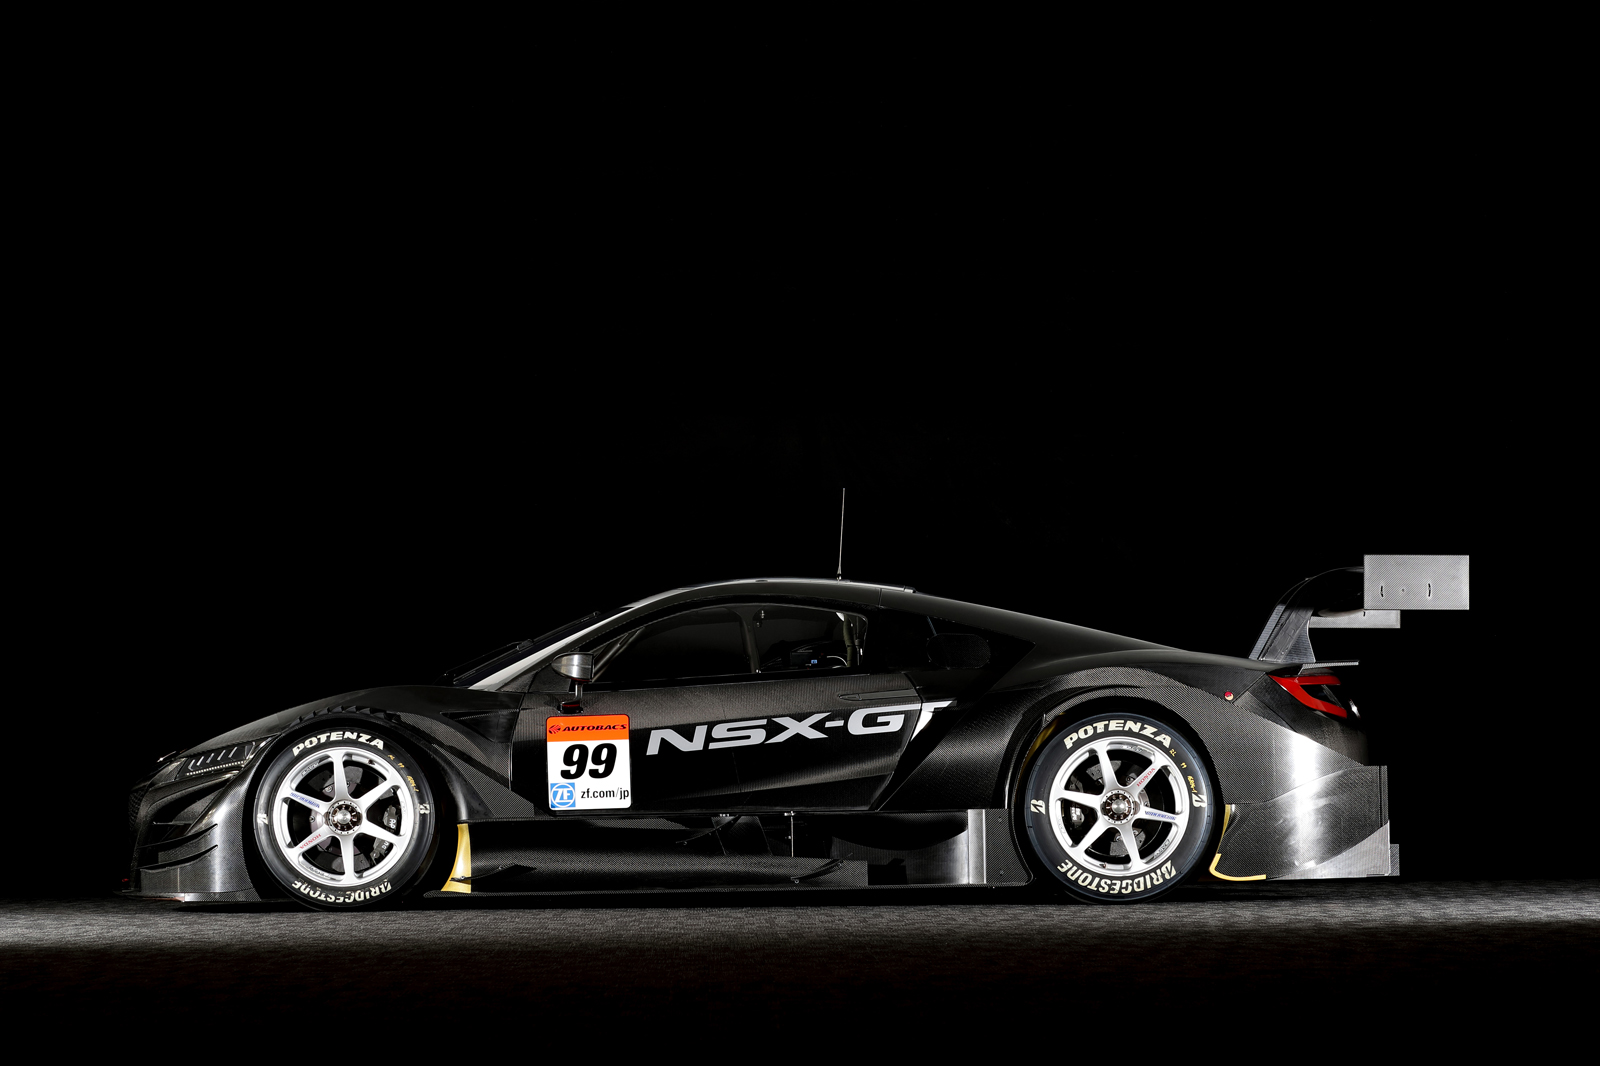 2017 Honda NSX GT Review   Top Speed. »